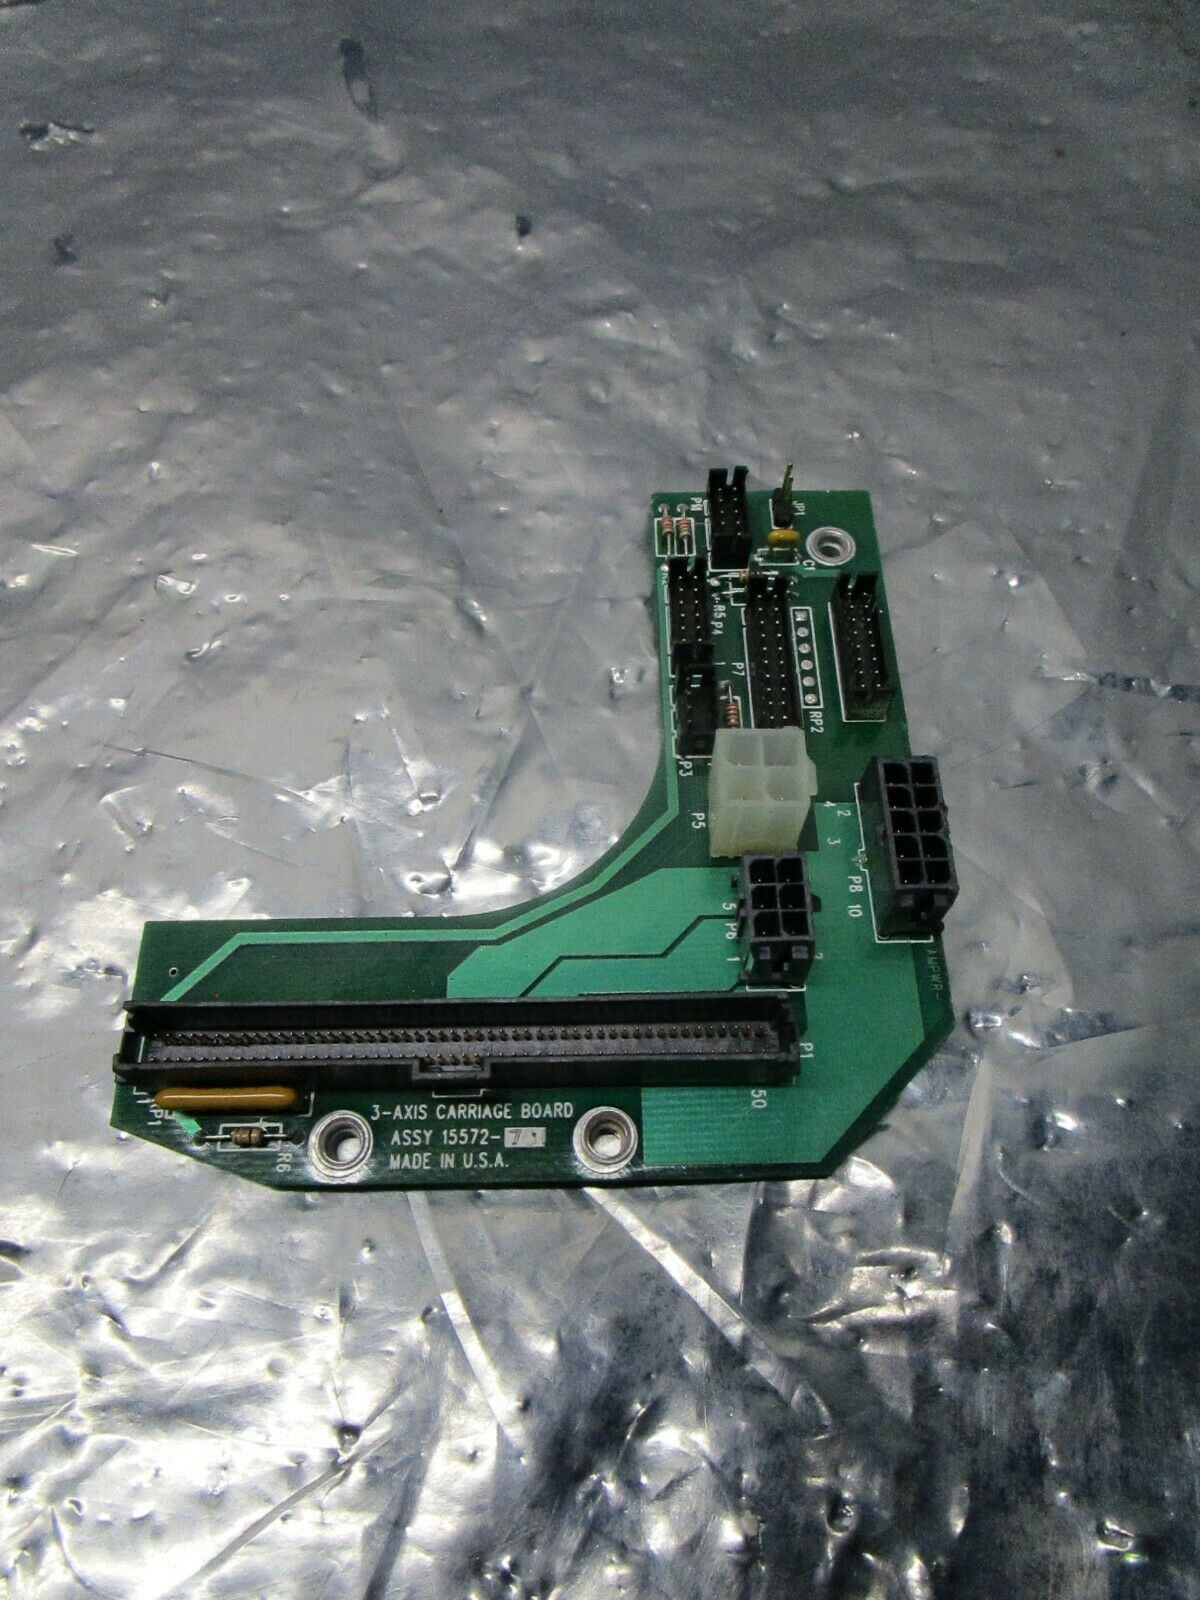 Asyst 15572-701 3-Axis Carriage Board, FAB 15571-001, 101186